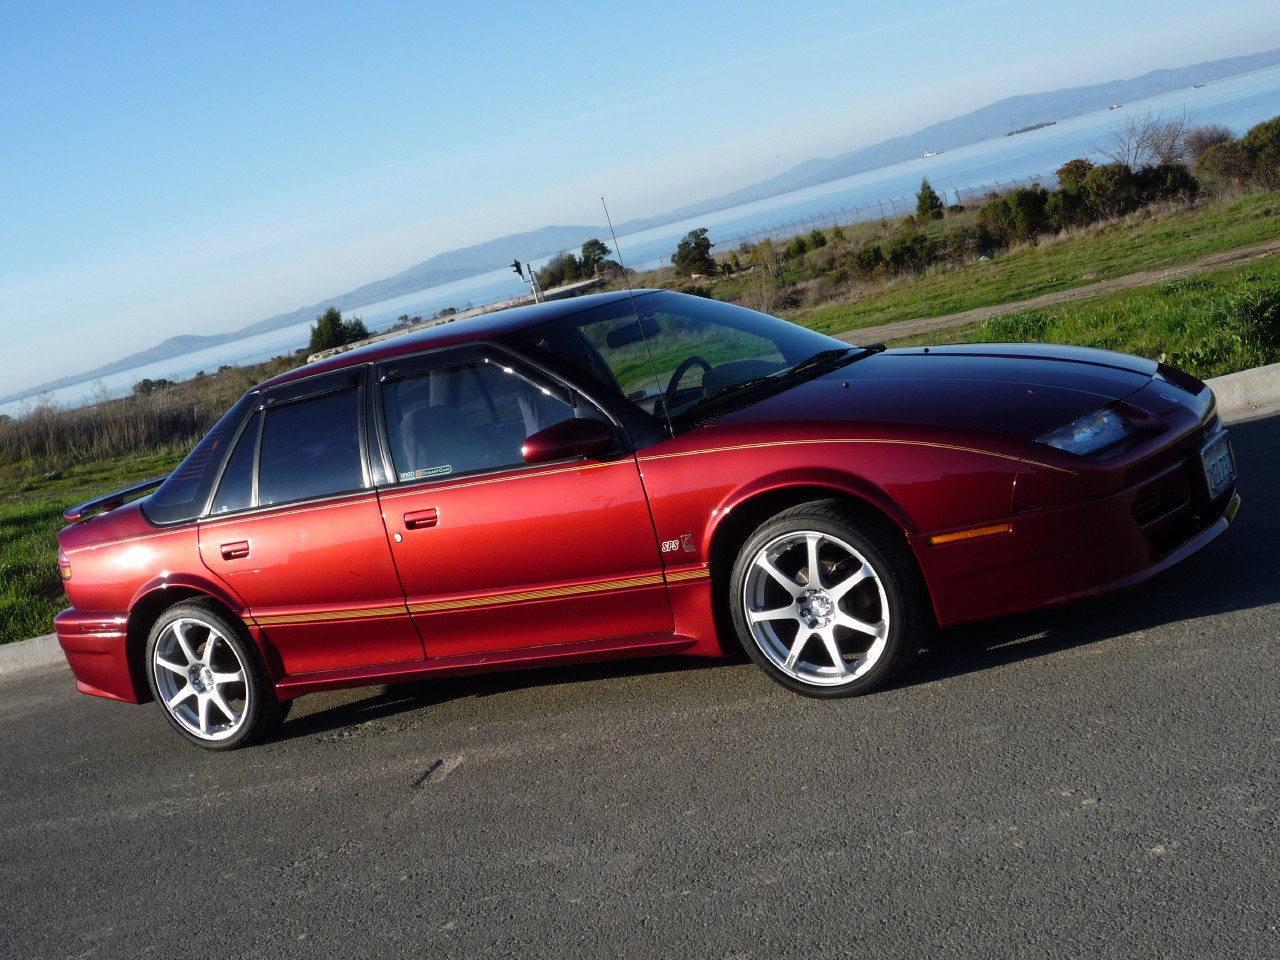 7437881 moreover Showthread besides Watch additionally Steering 20Wheel moreover Watch. on 2001 saturn sl1